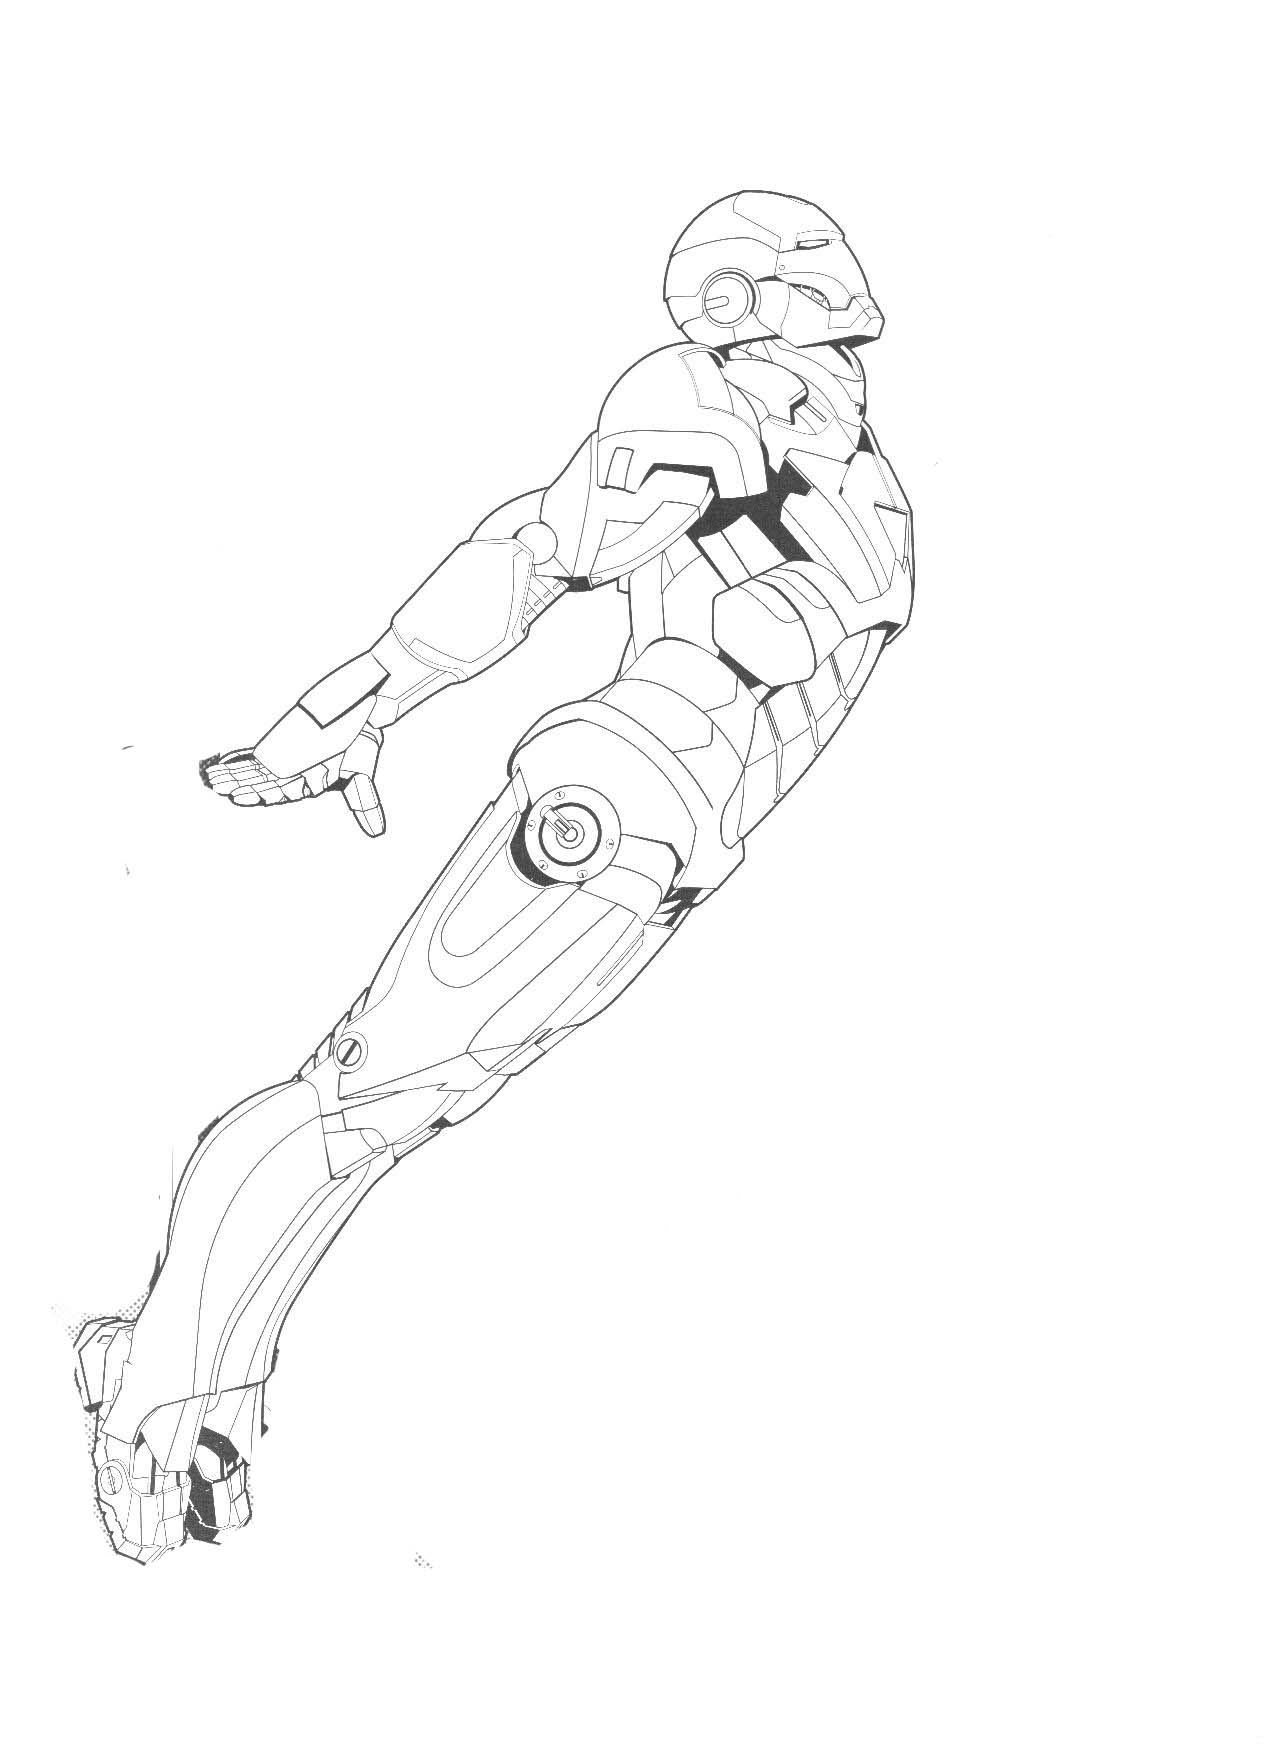 iron man images to colour iron man avengers coloring pages divyajananiorg colour images man iron to